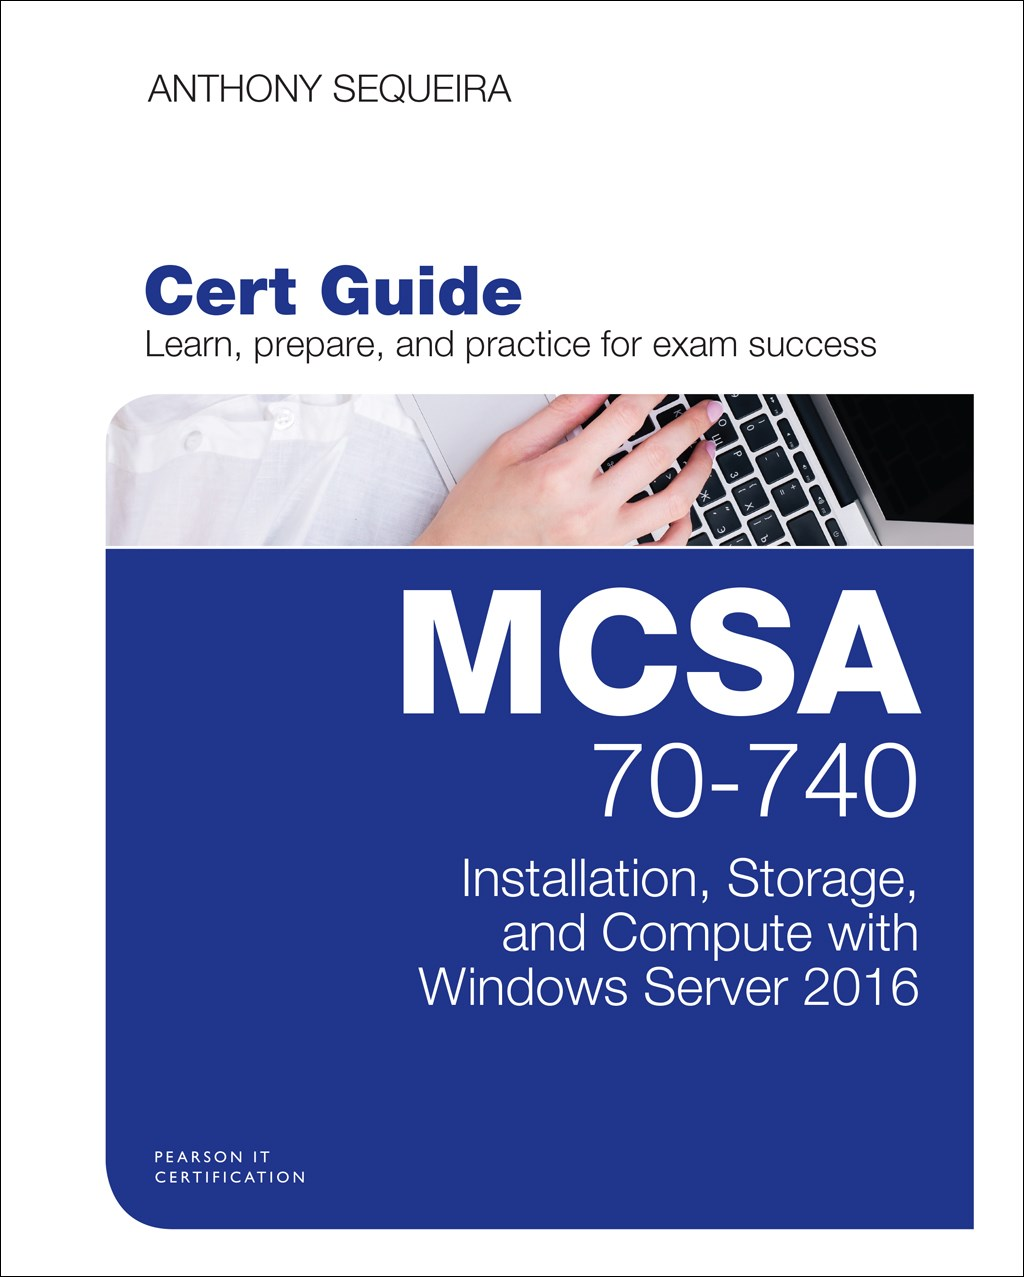 MCSA 70-740 Cert Guide,Rough Cuts: Installation, Storage, and Compute with Windows Server 2016